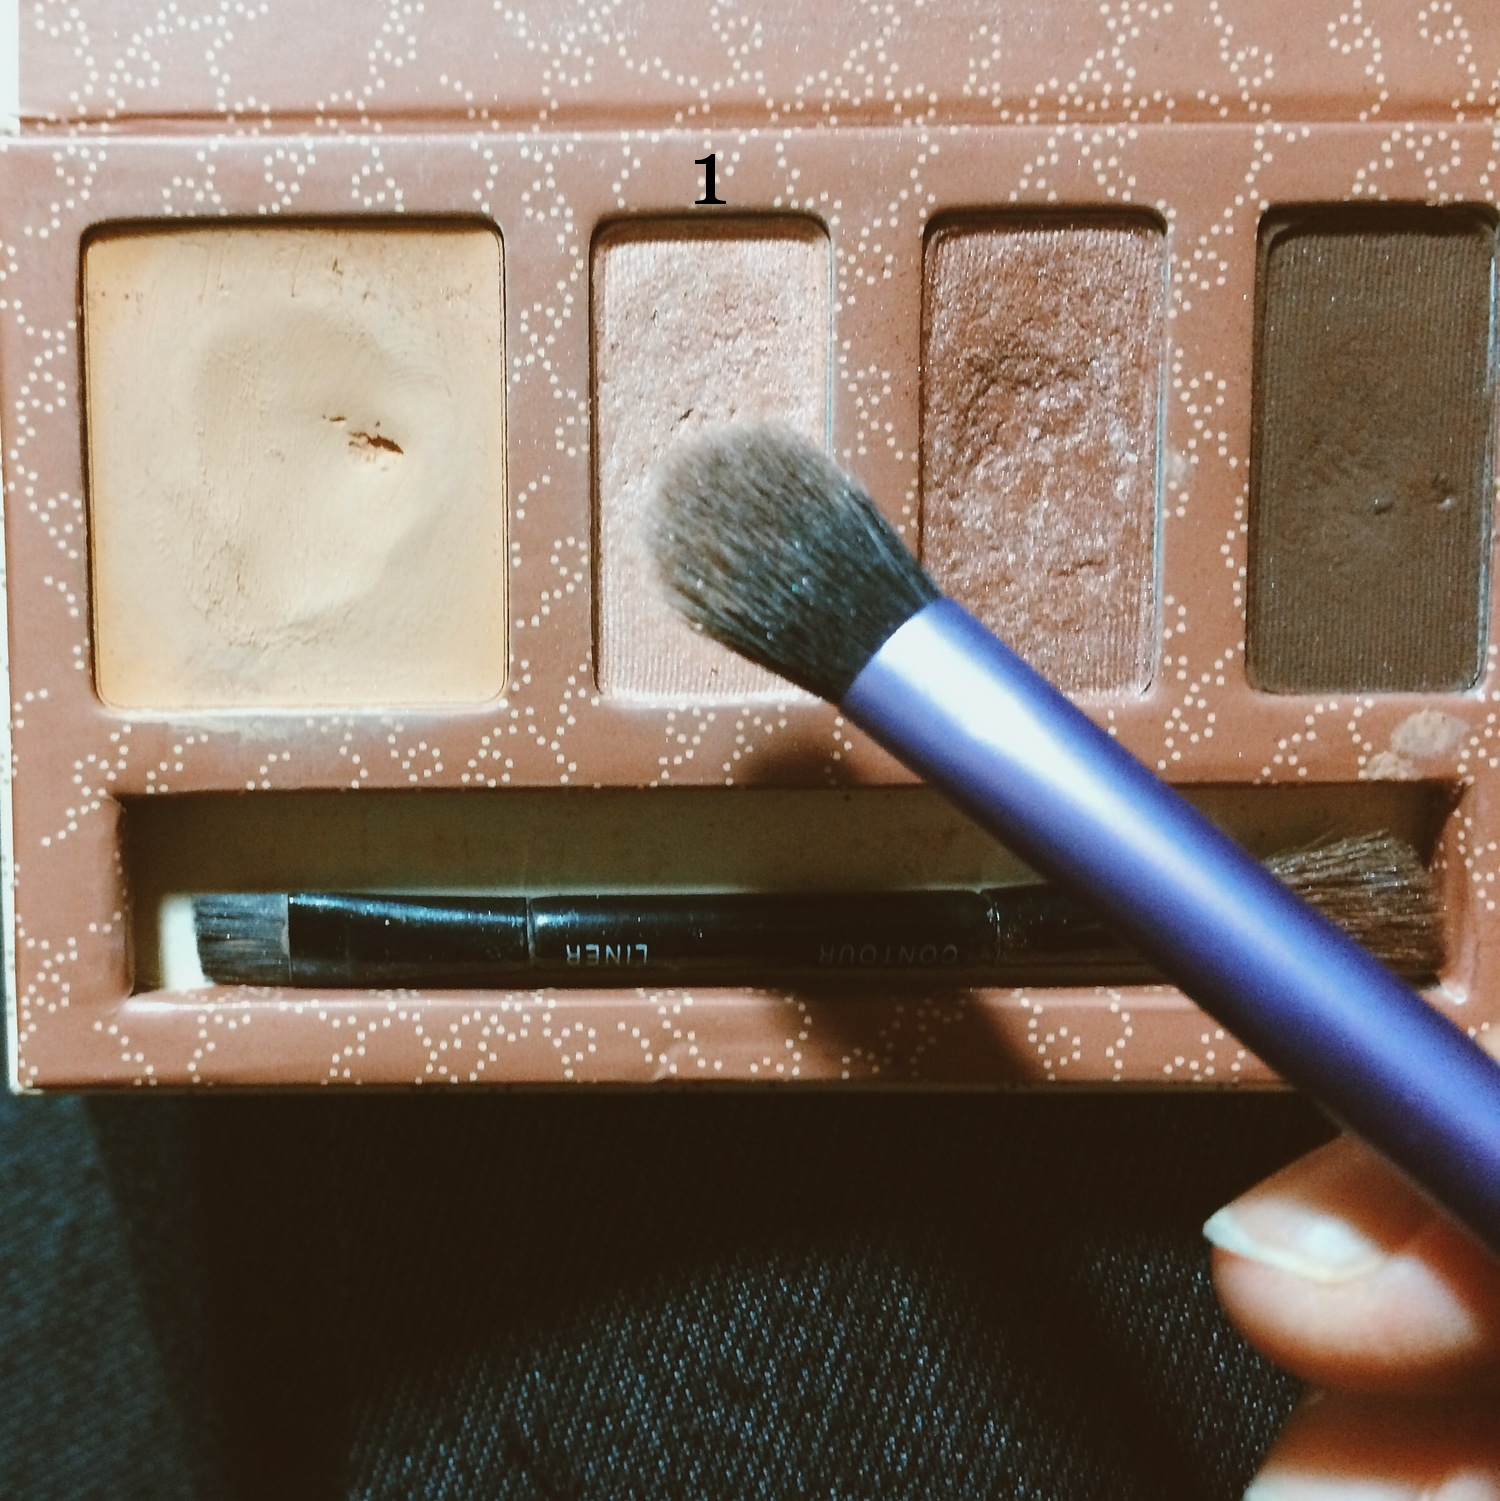 Take the first eyeshadow shade from the palette, and using a flat eyeshadow brush, press the champagne color all over the lids. you can use your own eyeshadow palette if you don't have this exact one.